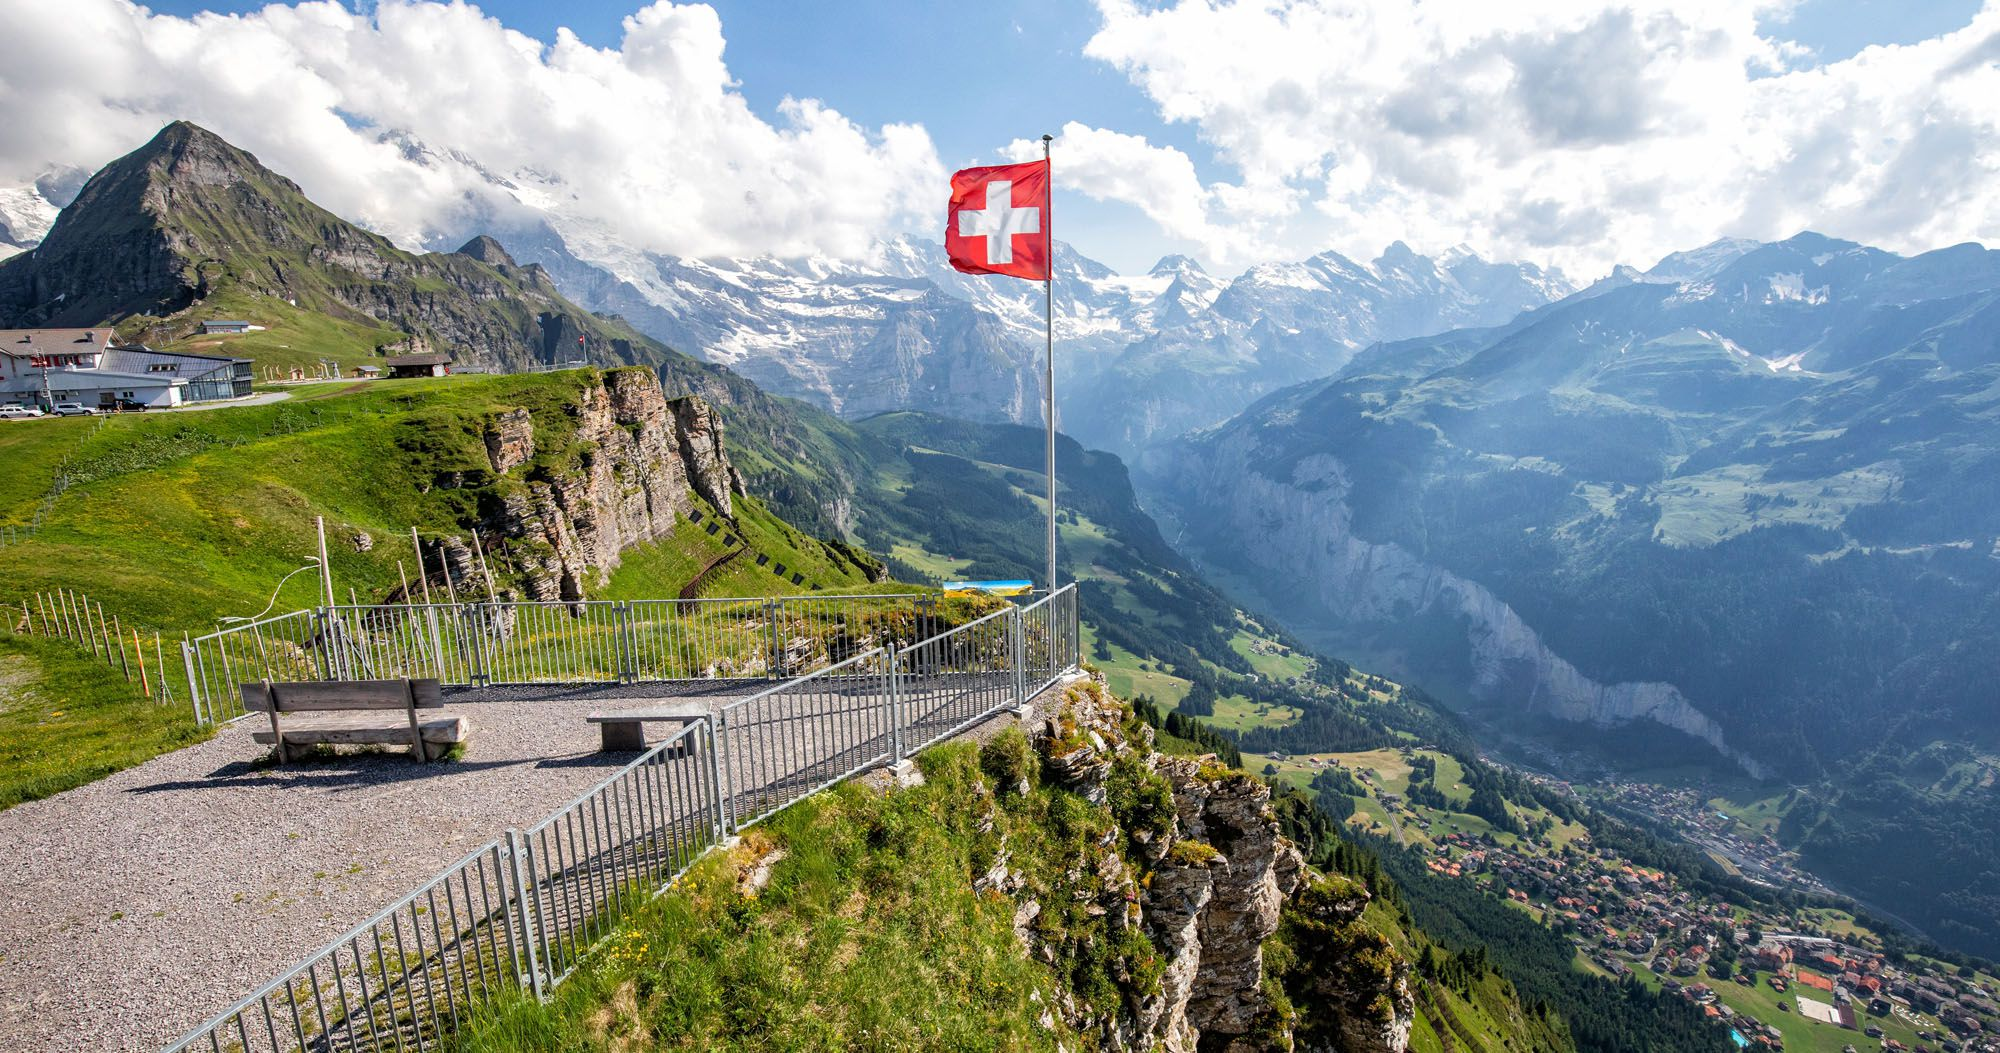 Things to do in Jungfrau Switzerland